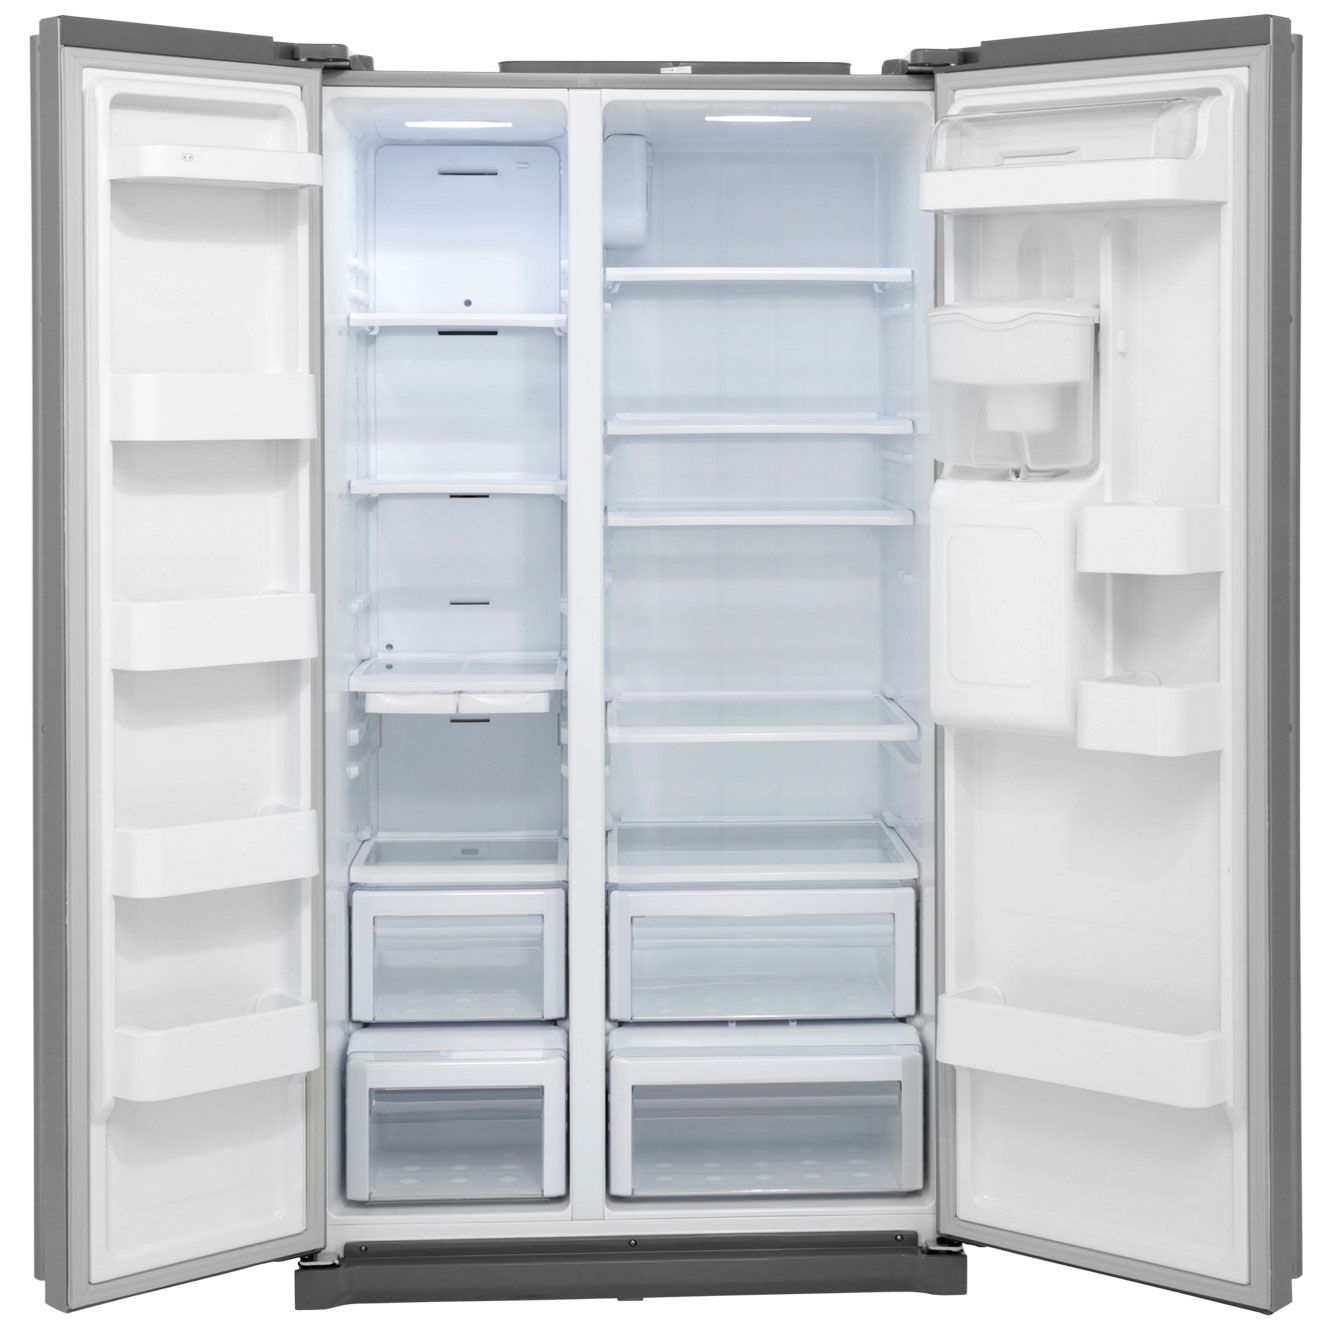 Medium image of samsung american fridge freezer   rsa1rtmg gm   ao com